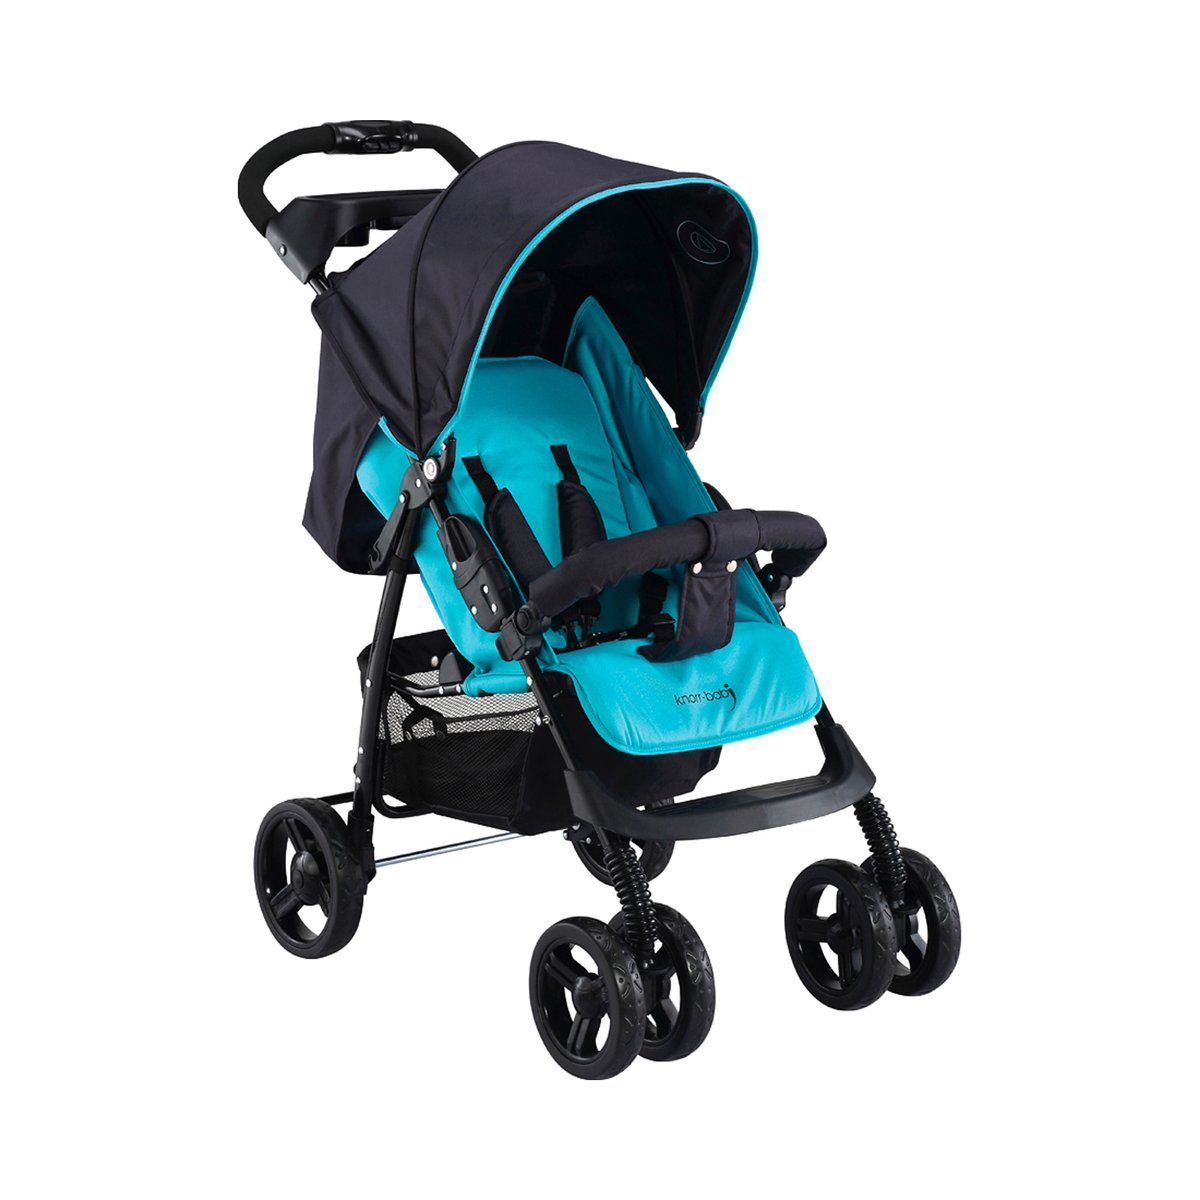 knorr-baby 886540 SportwagenV-Easy-Fold Happy Colour, blau